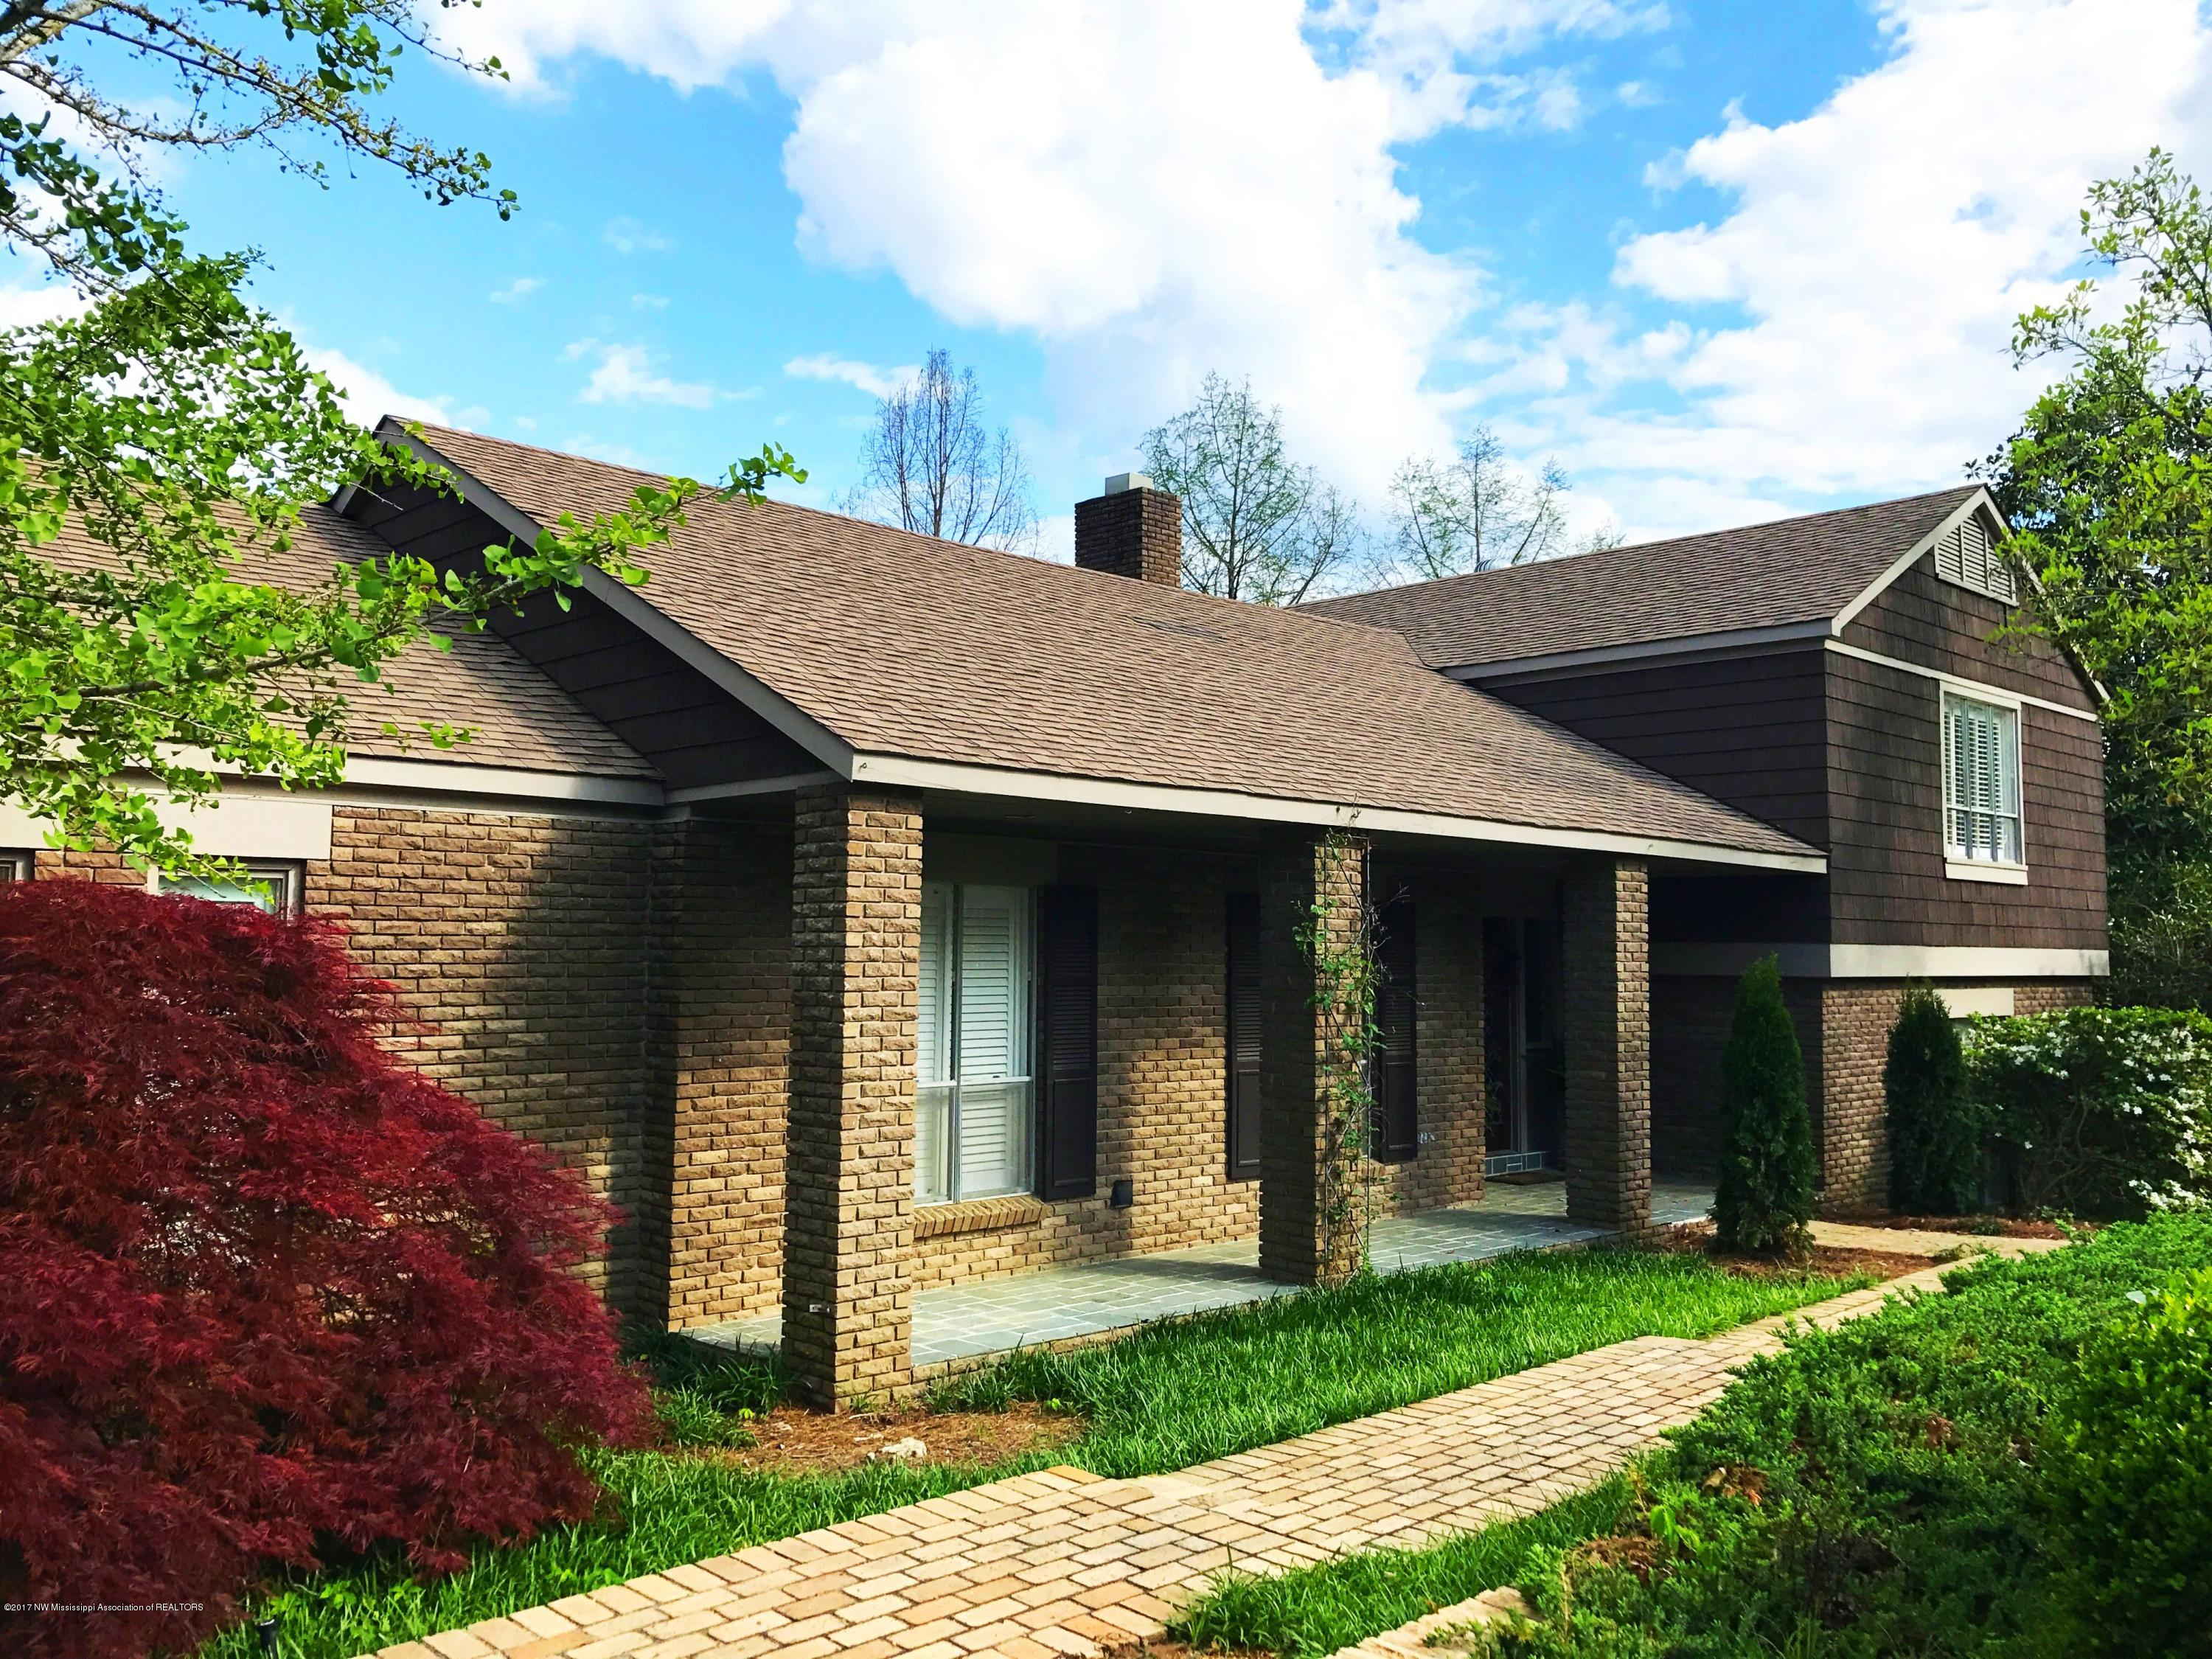 244 Country Club, Panola, Mississippi 38606, 4 Bedrooms Bedrooms, ,5 BathroomsBathrooms,Residential,For Sale,Country Club,309622